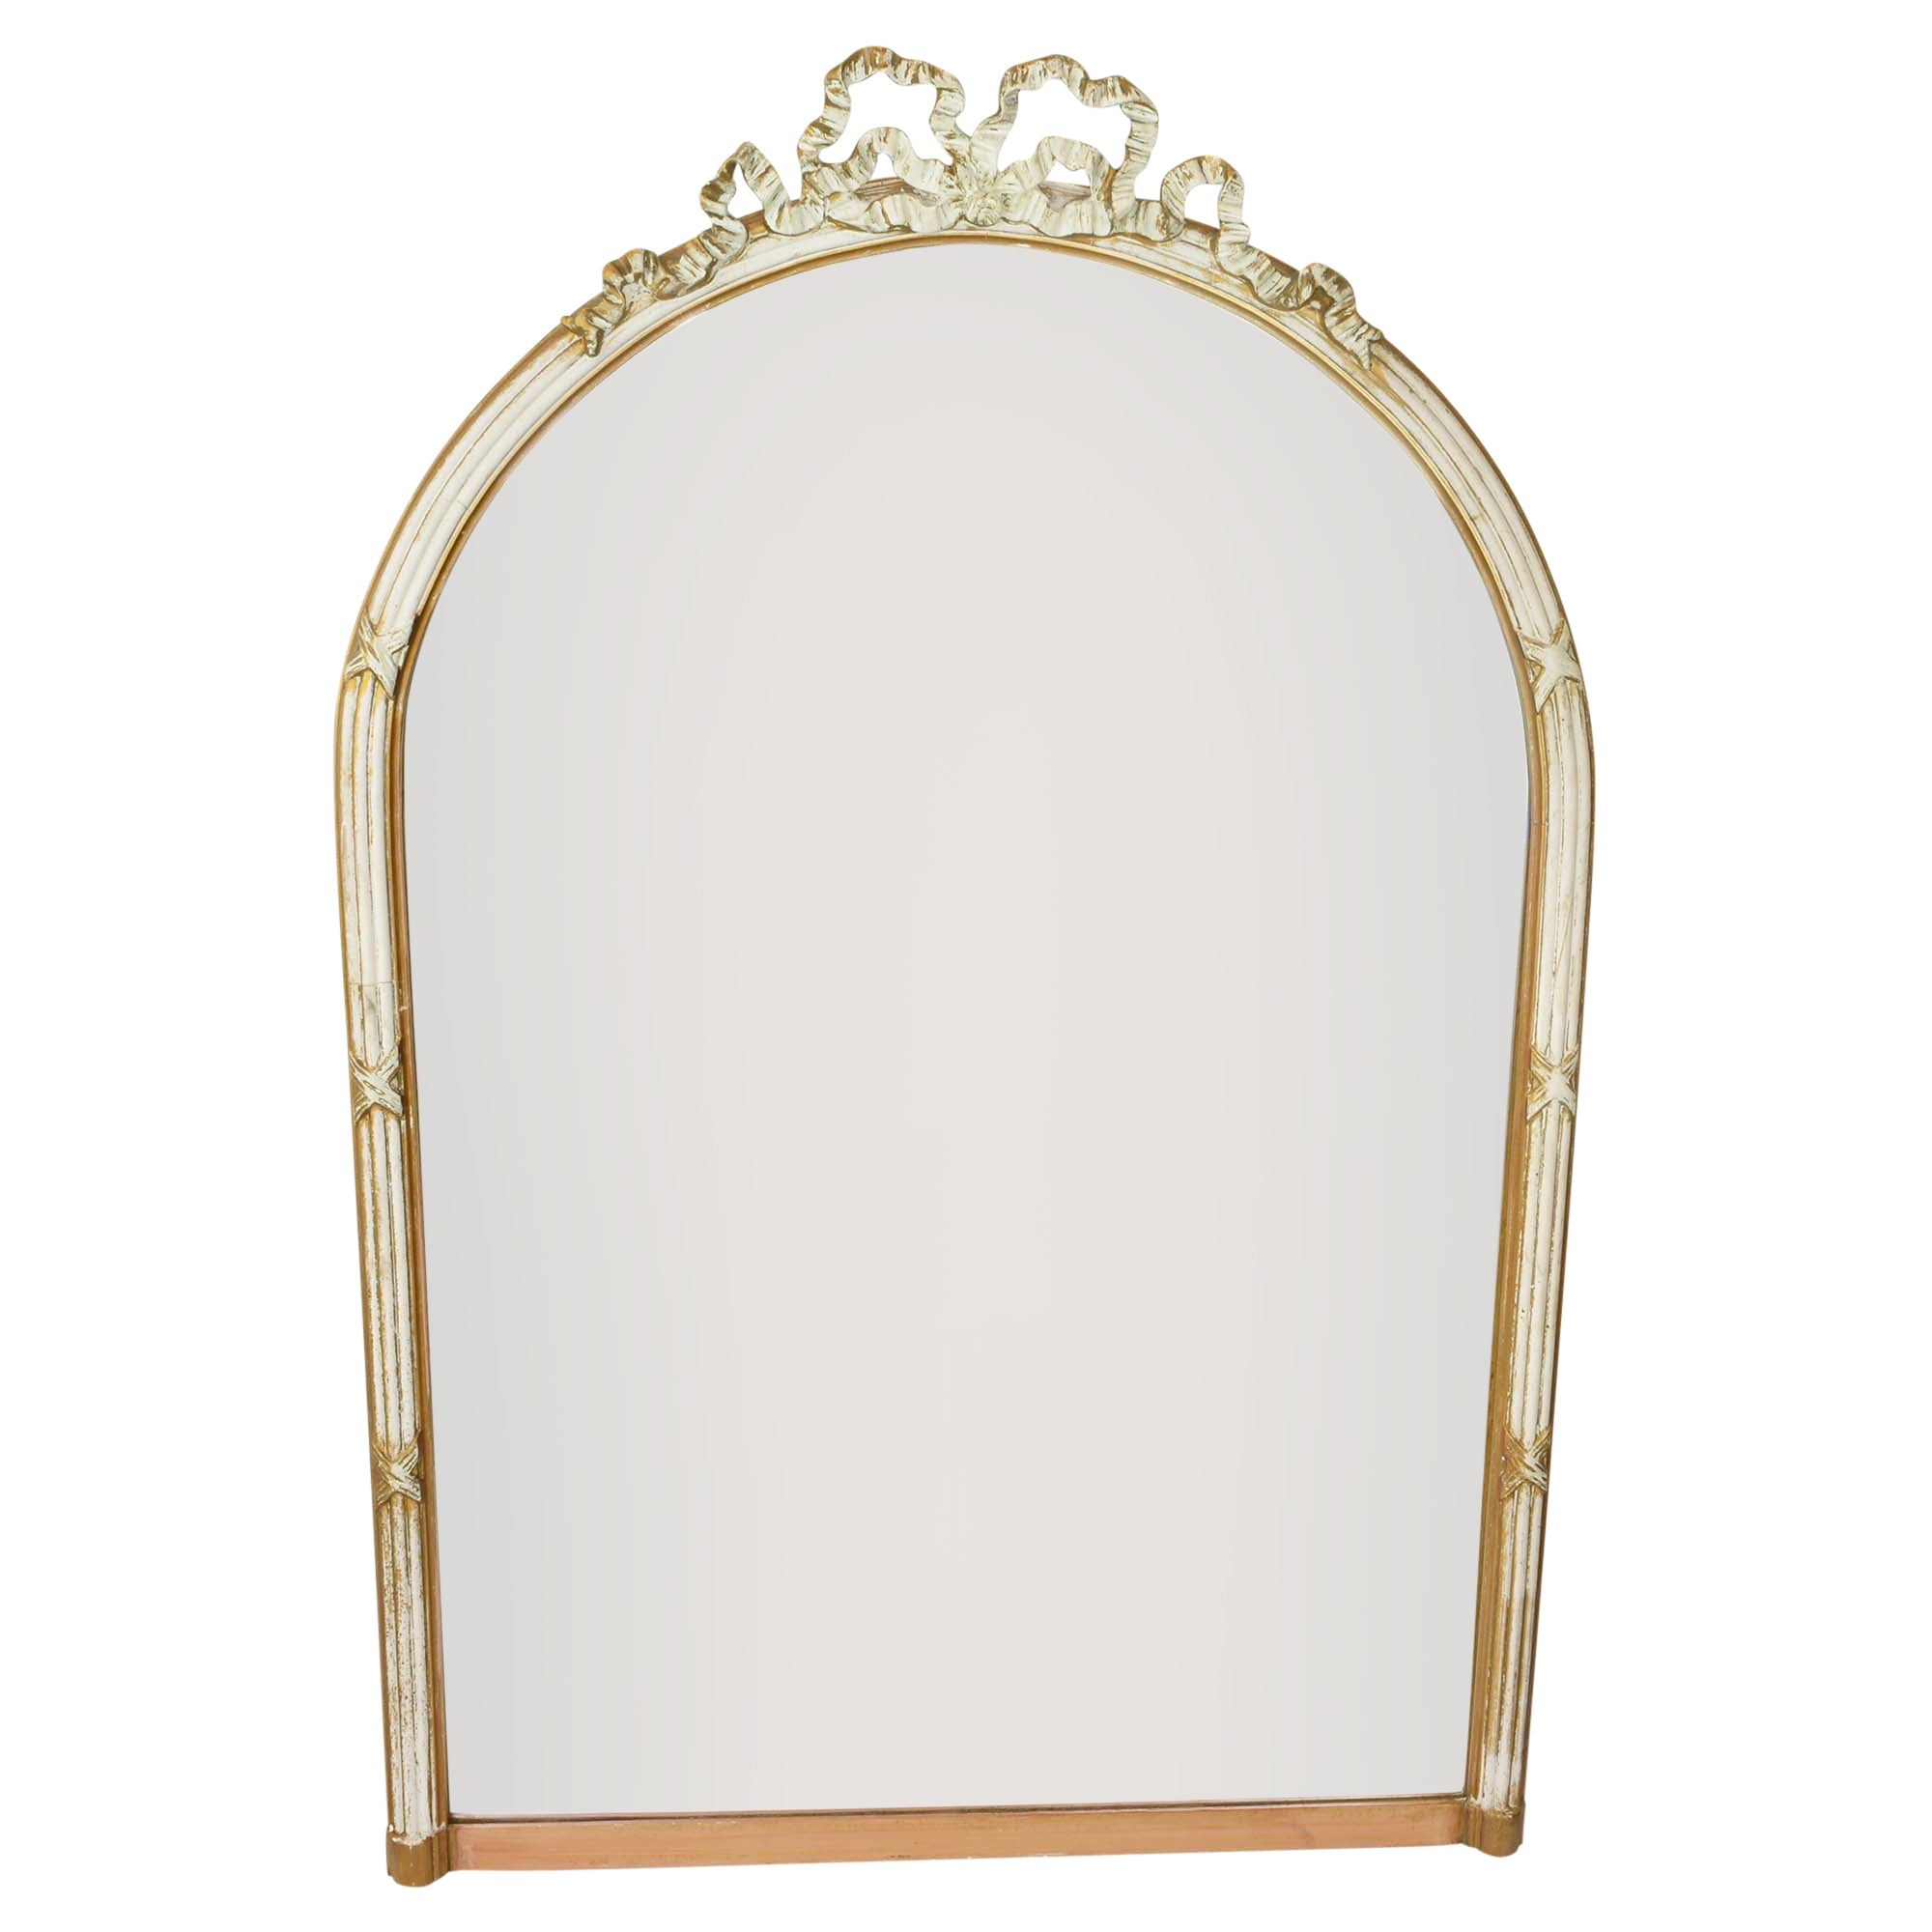 Oversized Large Antique Wall Mirror with Bow Accent